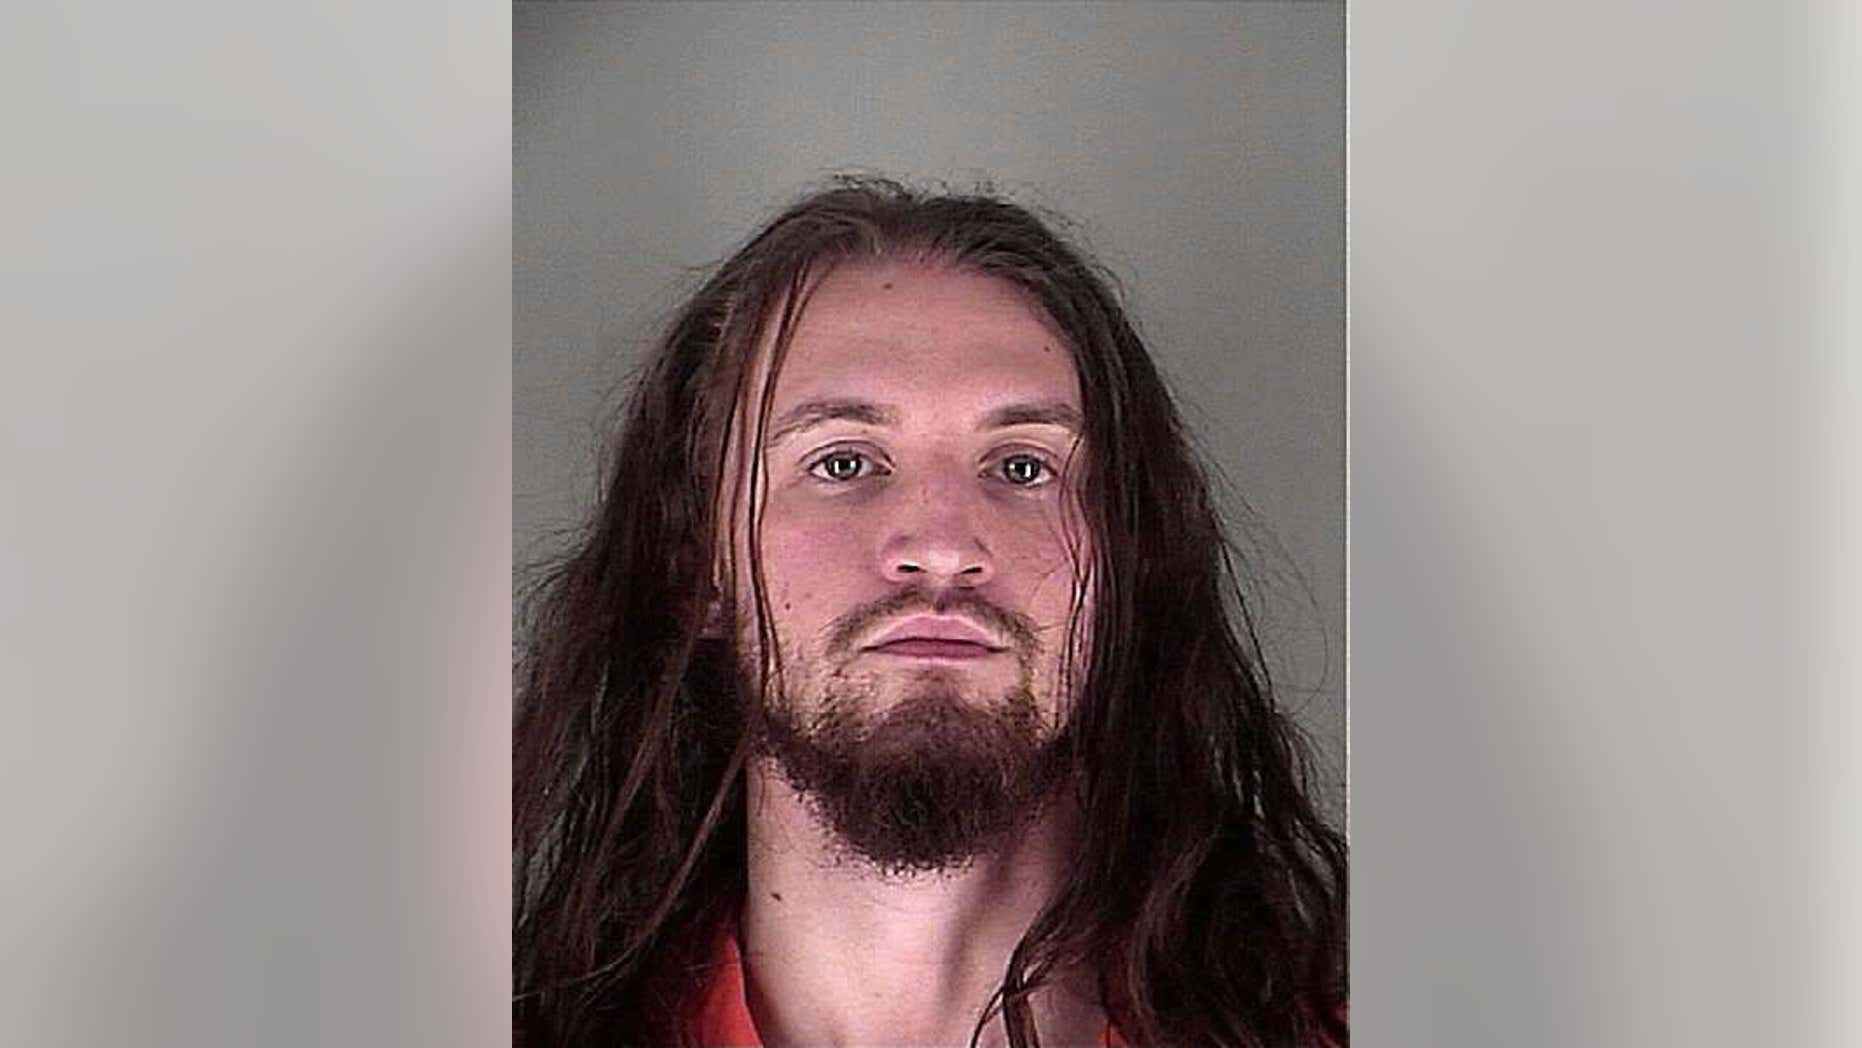 This 2016 photo provided by the Hennepin County Sheriff's Office, shows Abdul Raheem Habil Ali-Skelton, a Minnesota man accused of lying to the FBI about when he last contacted the Islamic State group.